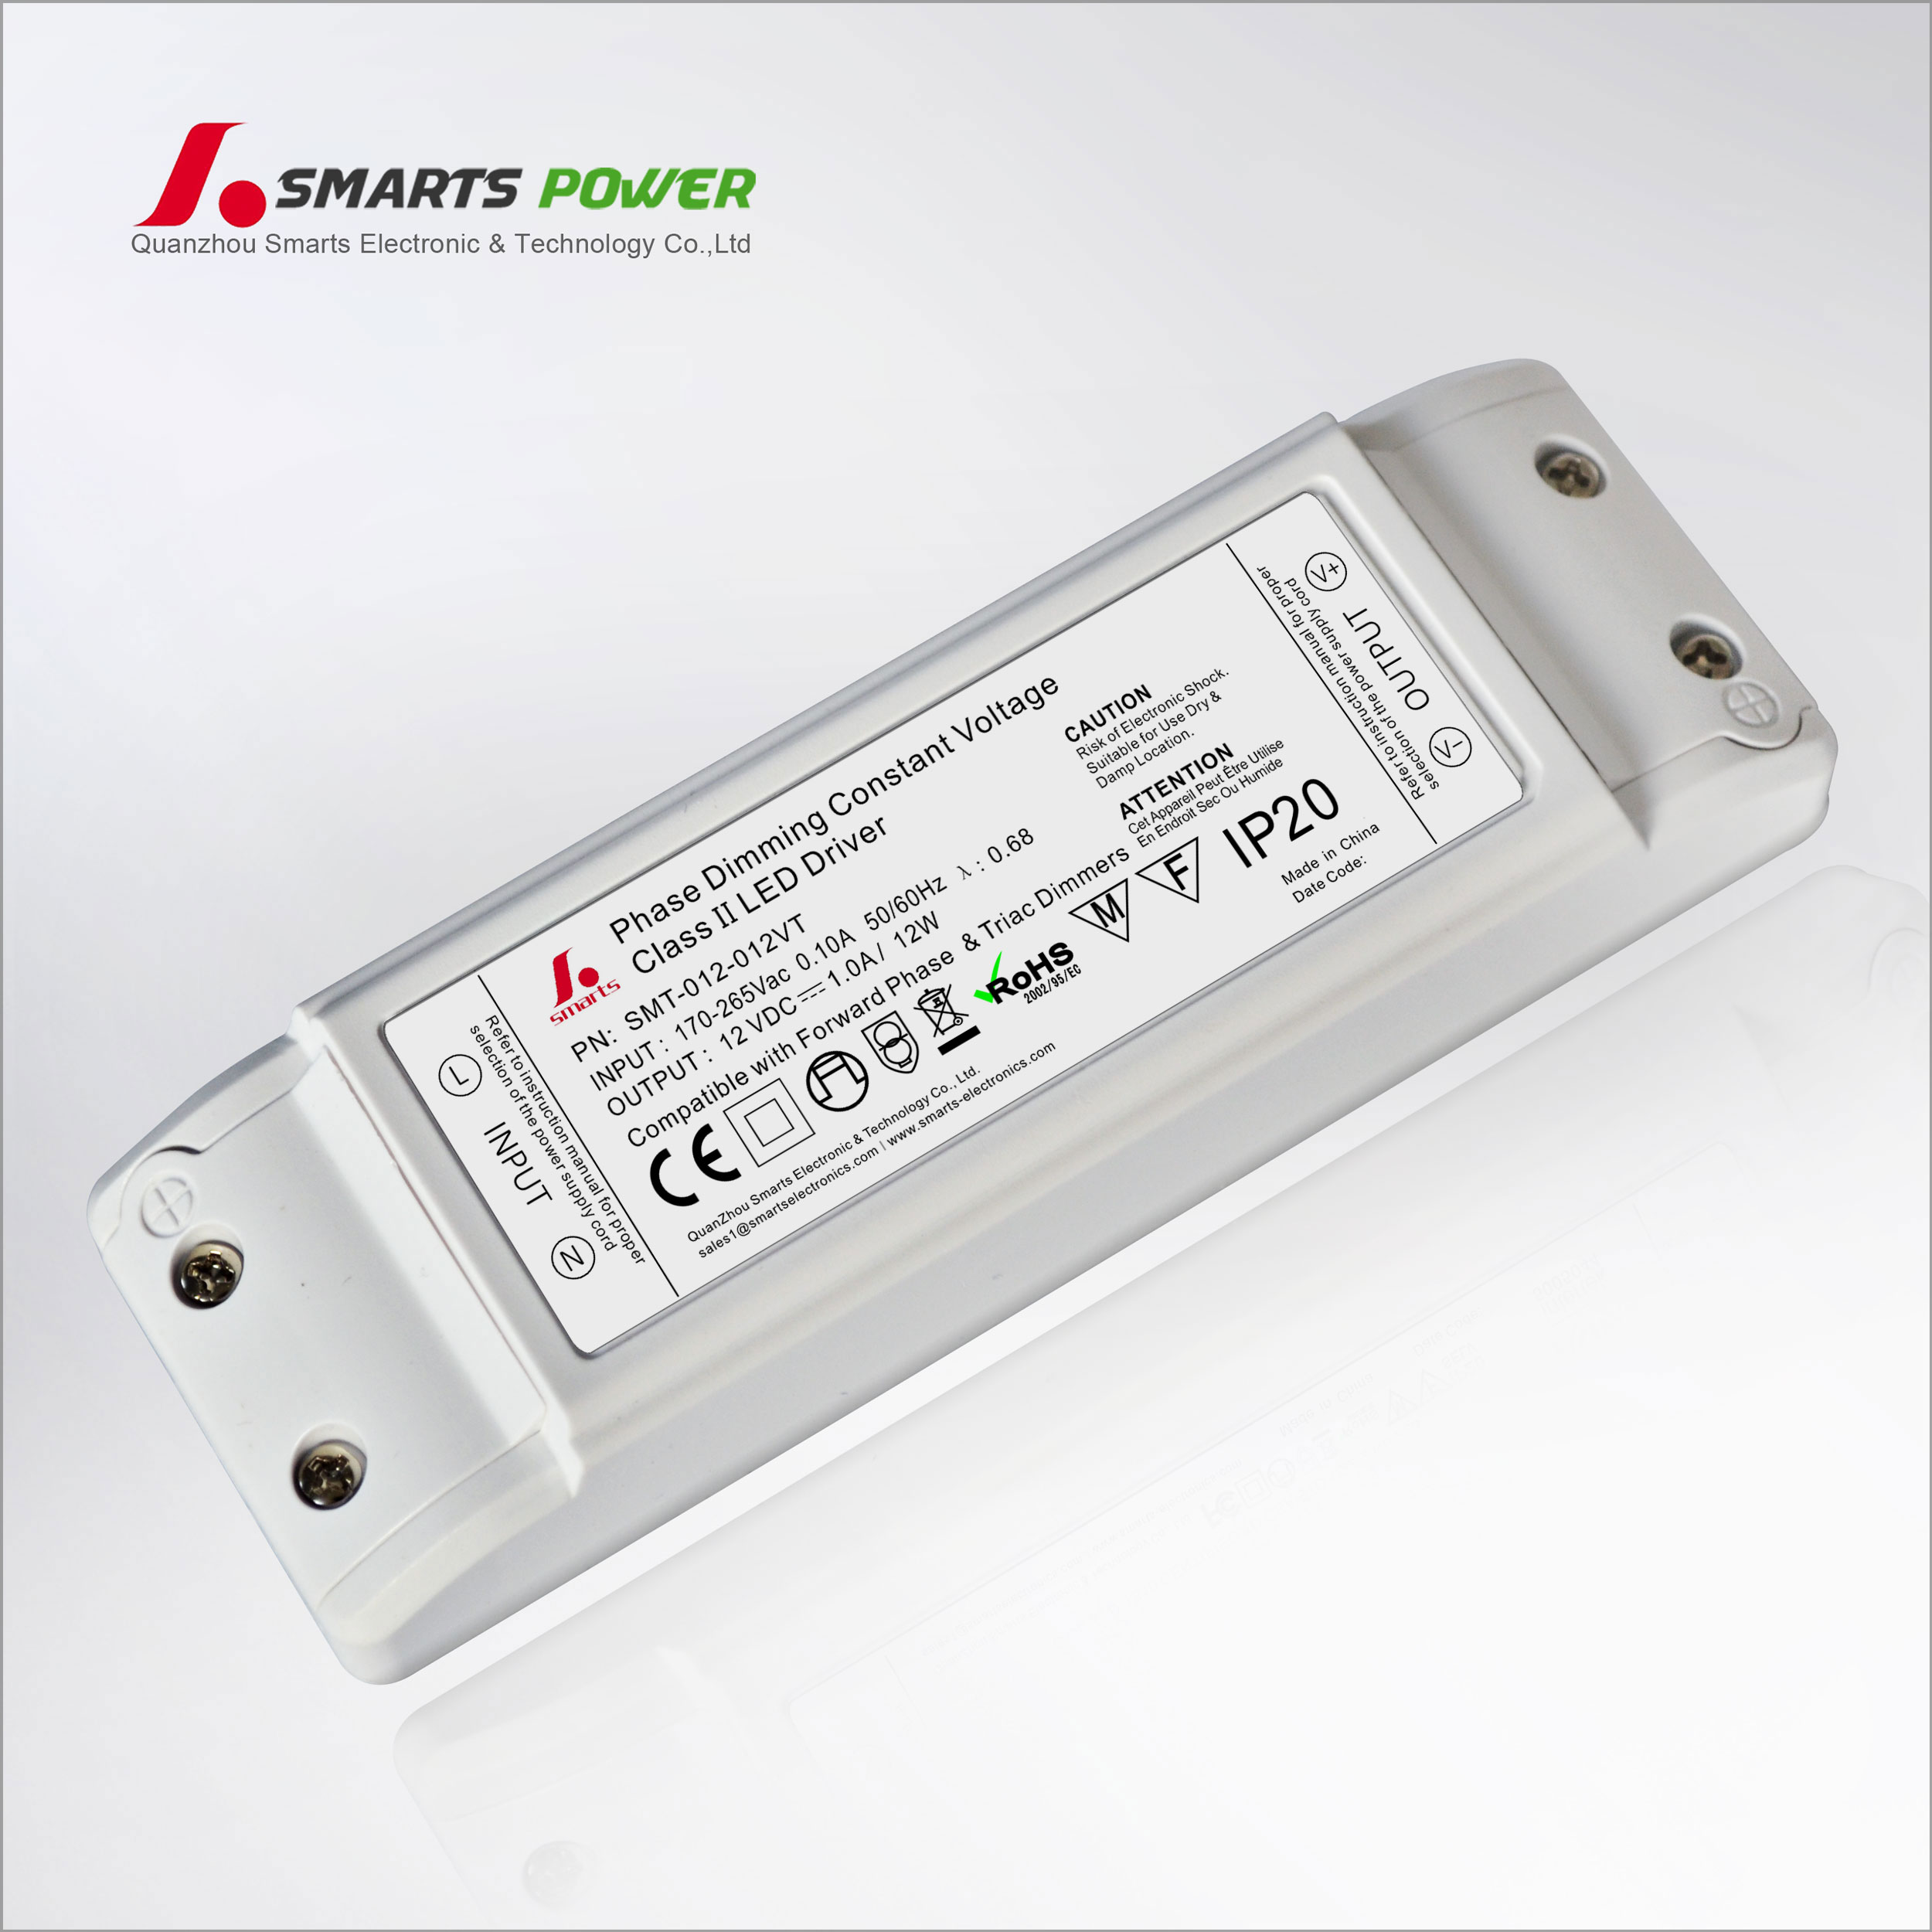 12v 24v led driver,dimmable led power supply,Trailing edge led dimmers